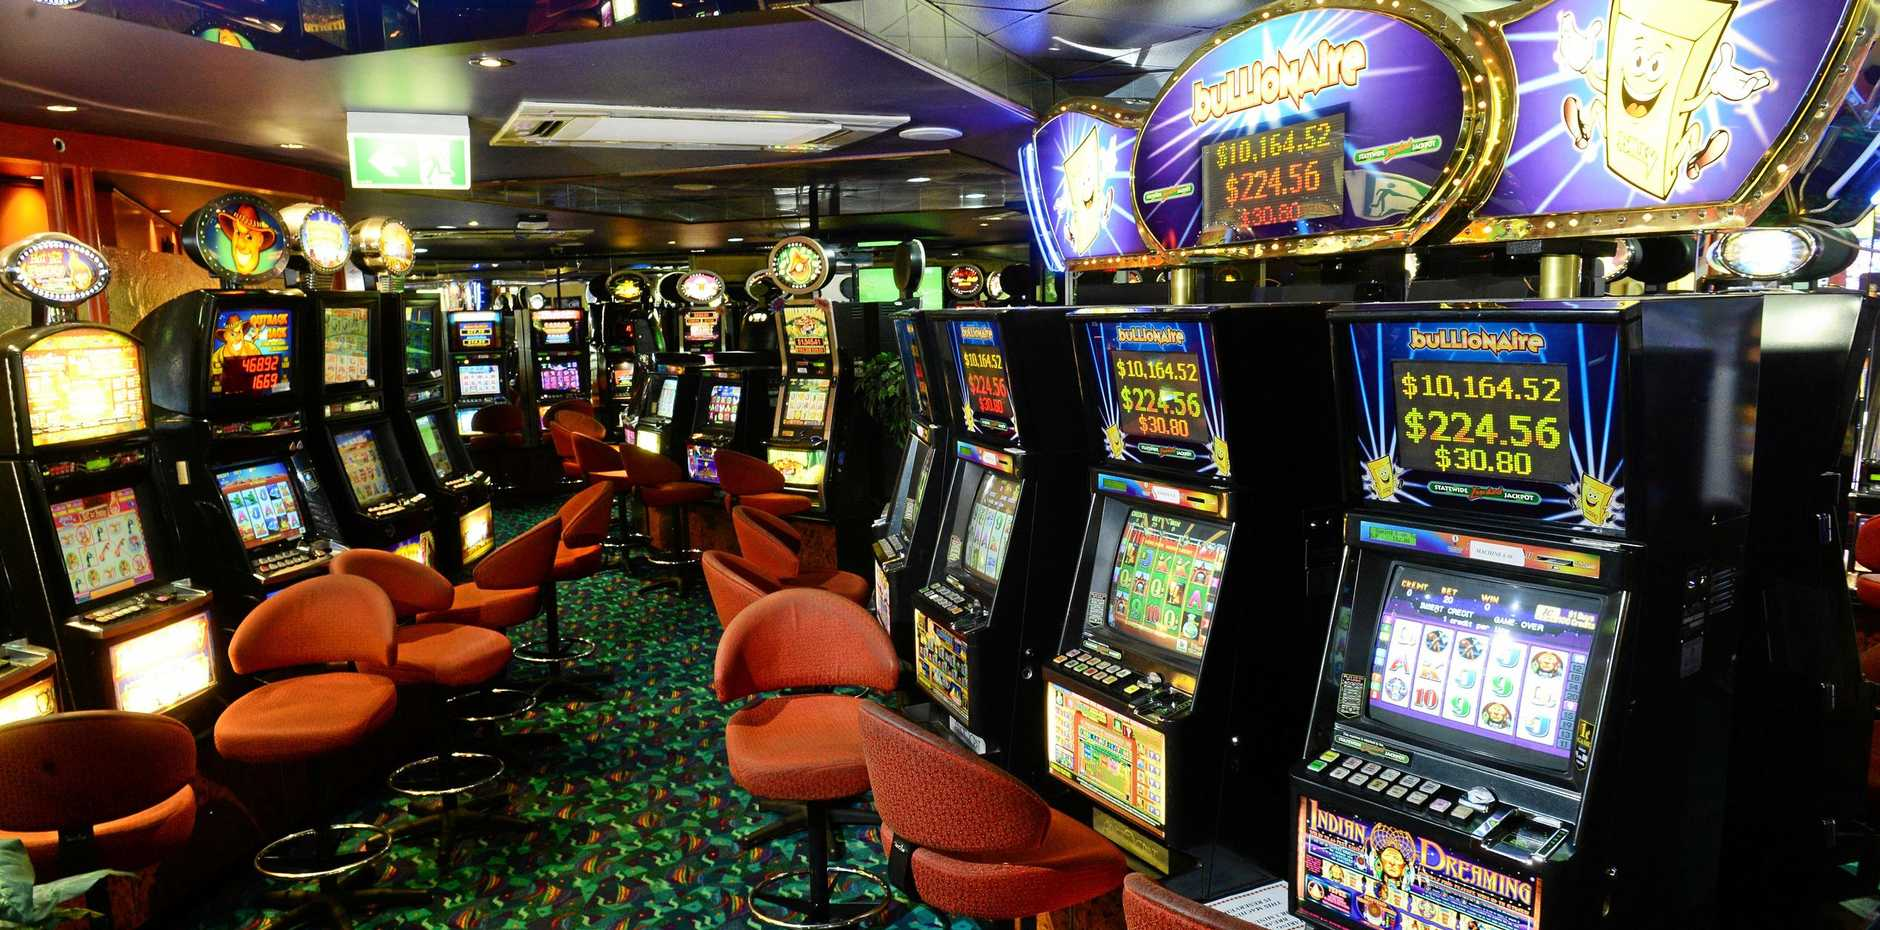 The latest NSW gambling machine data has been released.